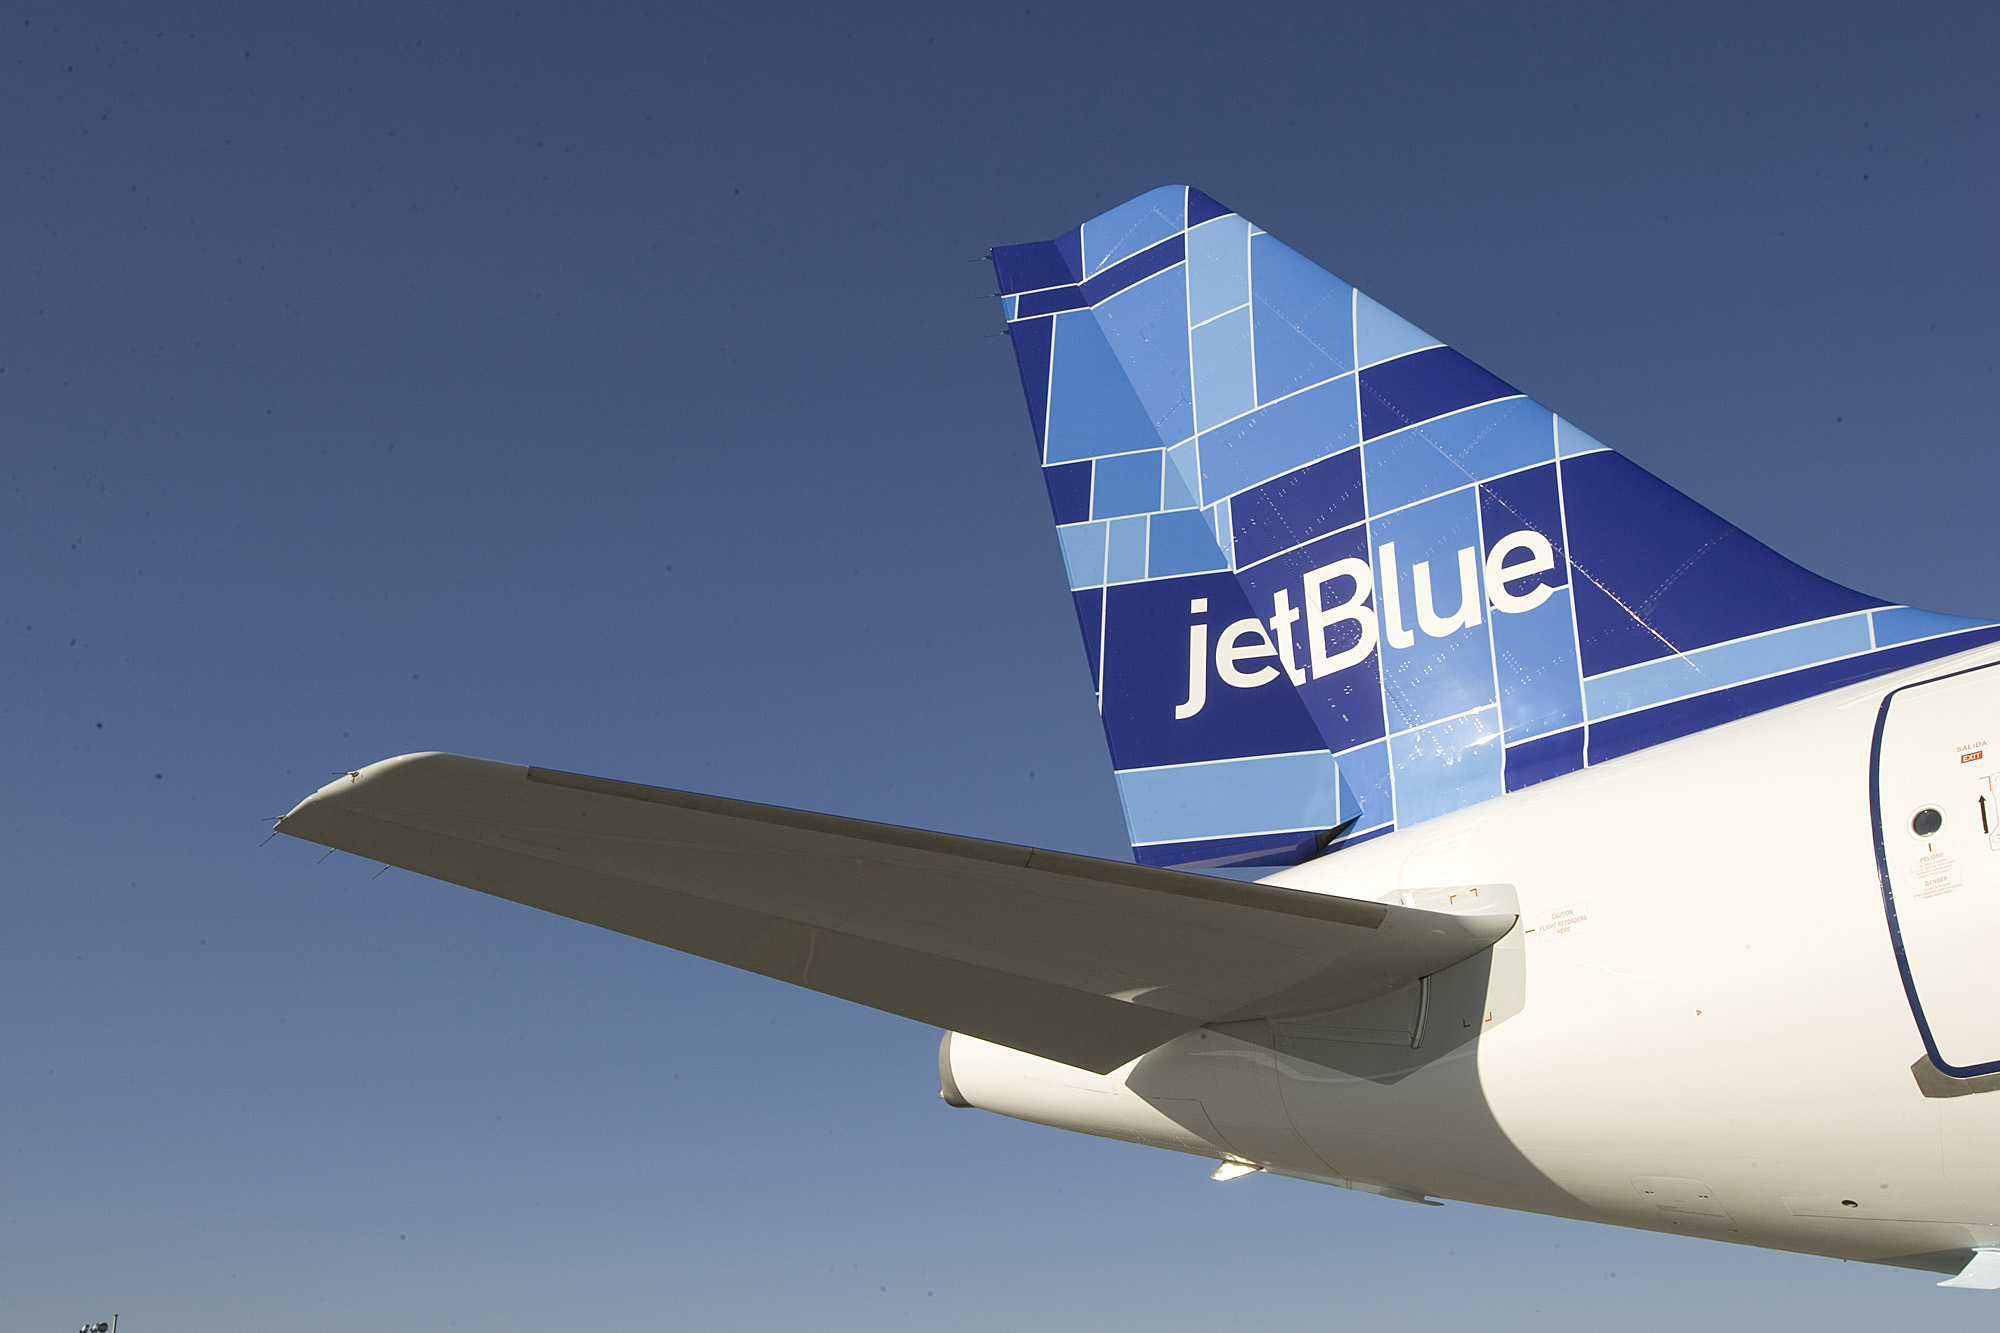 Did JetBlue Force Out 2 Gay Flight Attendants Because One Had to Take Leave To Care For The Other?